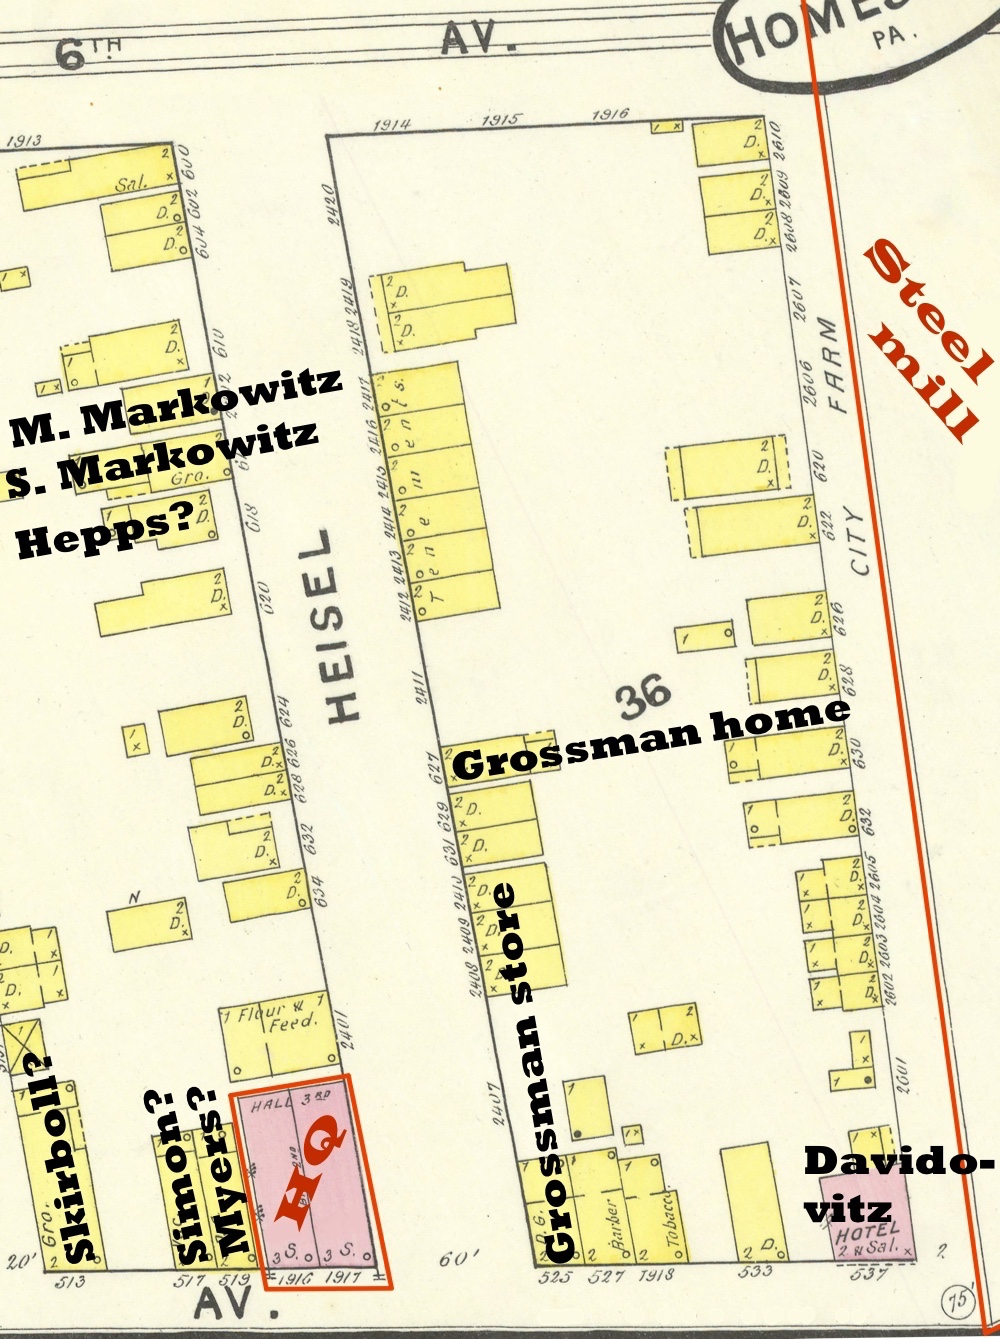 Map showing the Jews of Homestead in proximity to the headquarters of the strikers